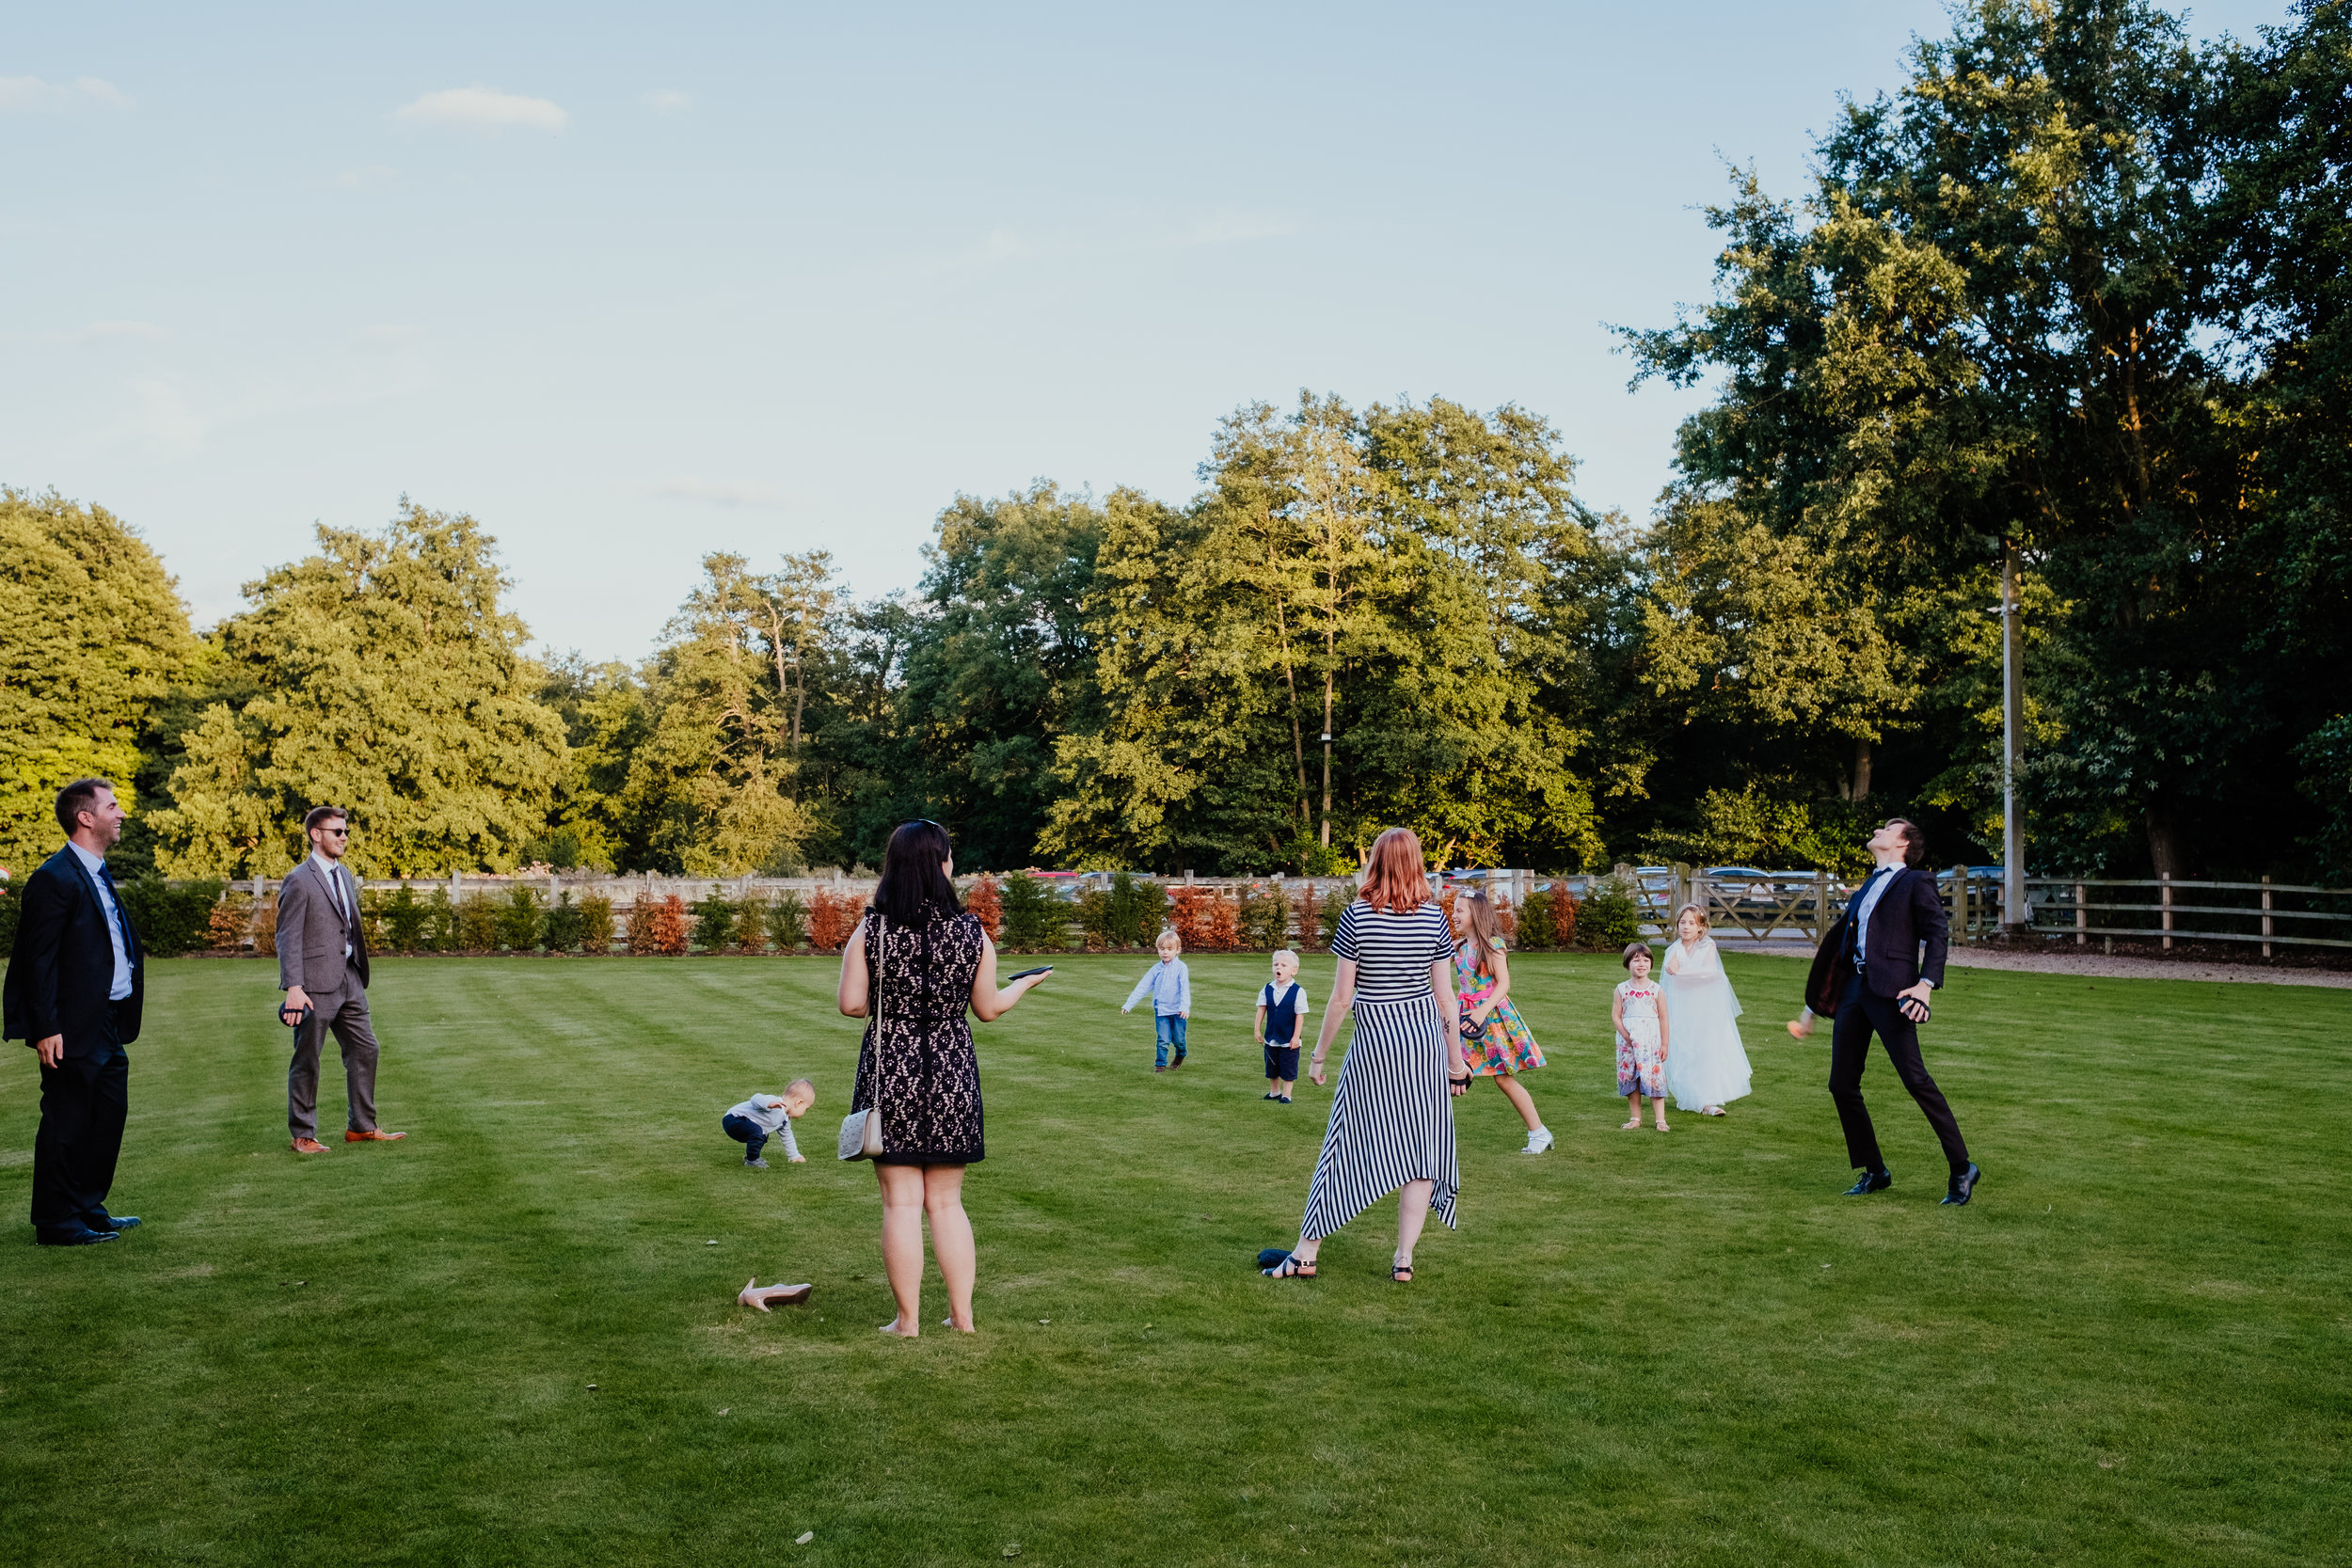 Wedding guests playing games outside